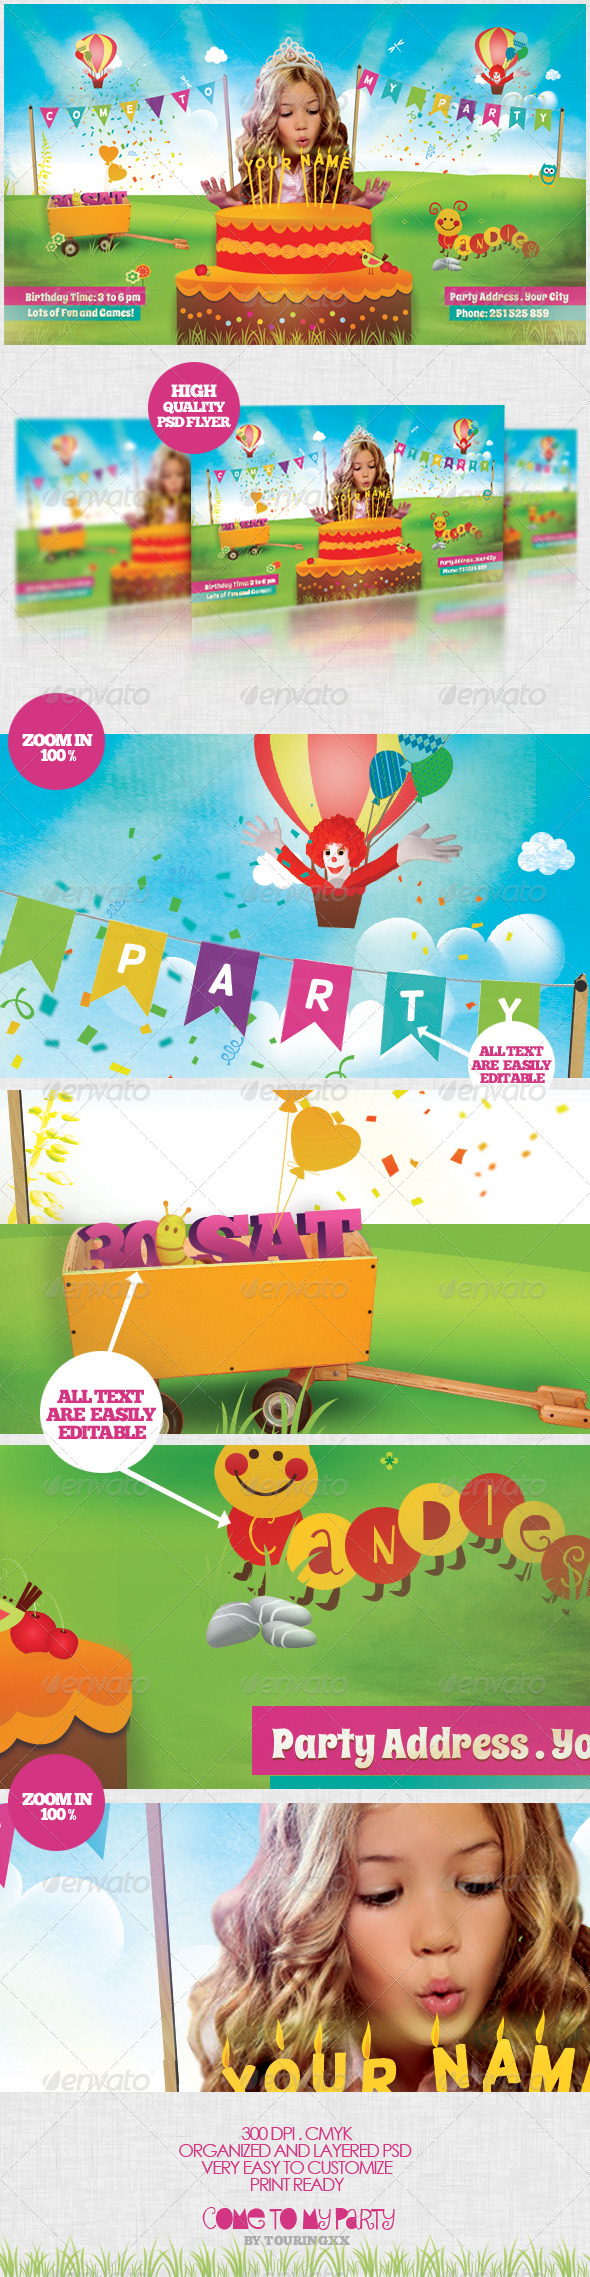 Come To My Party Flyer Template - Flyers Print Templates